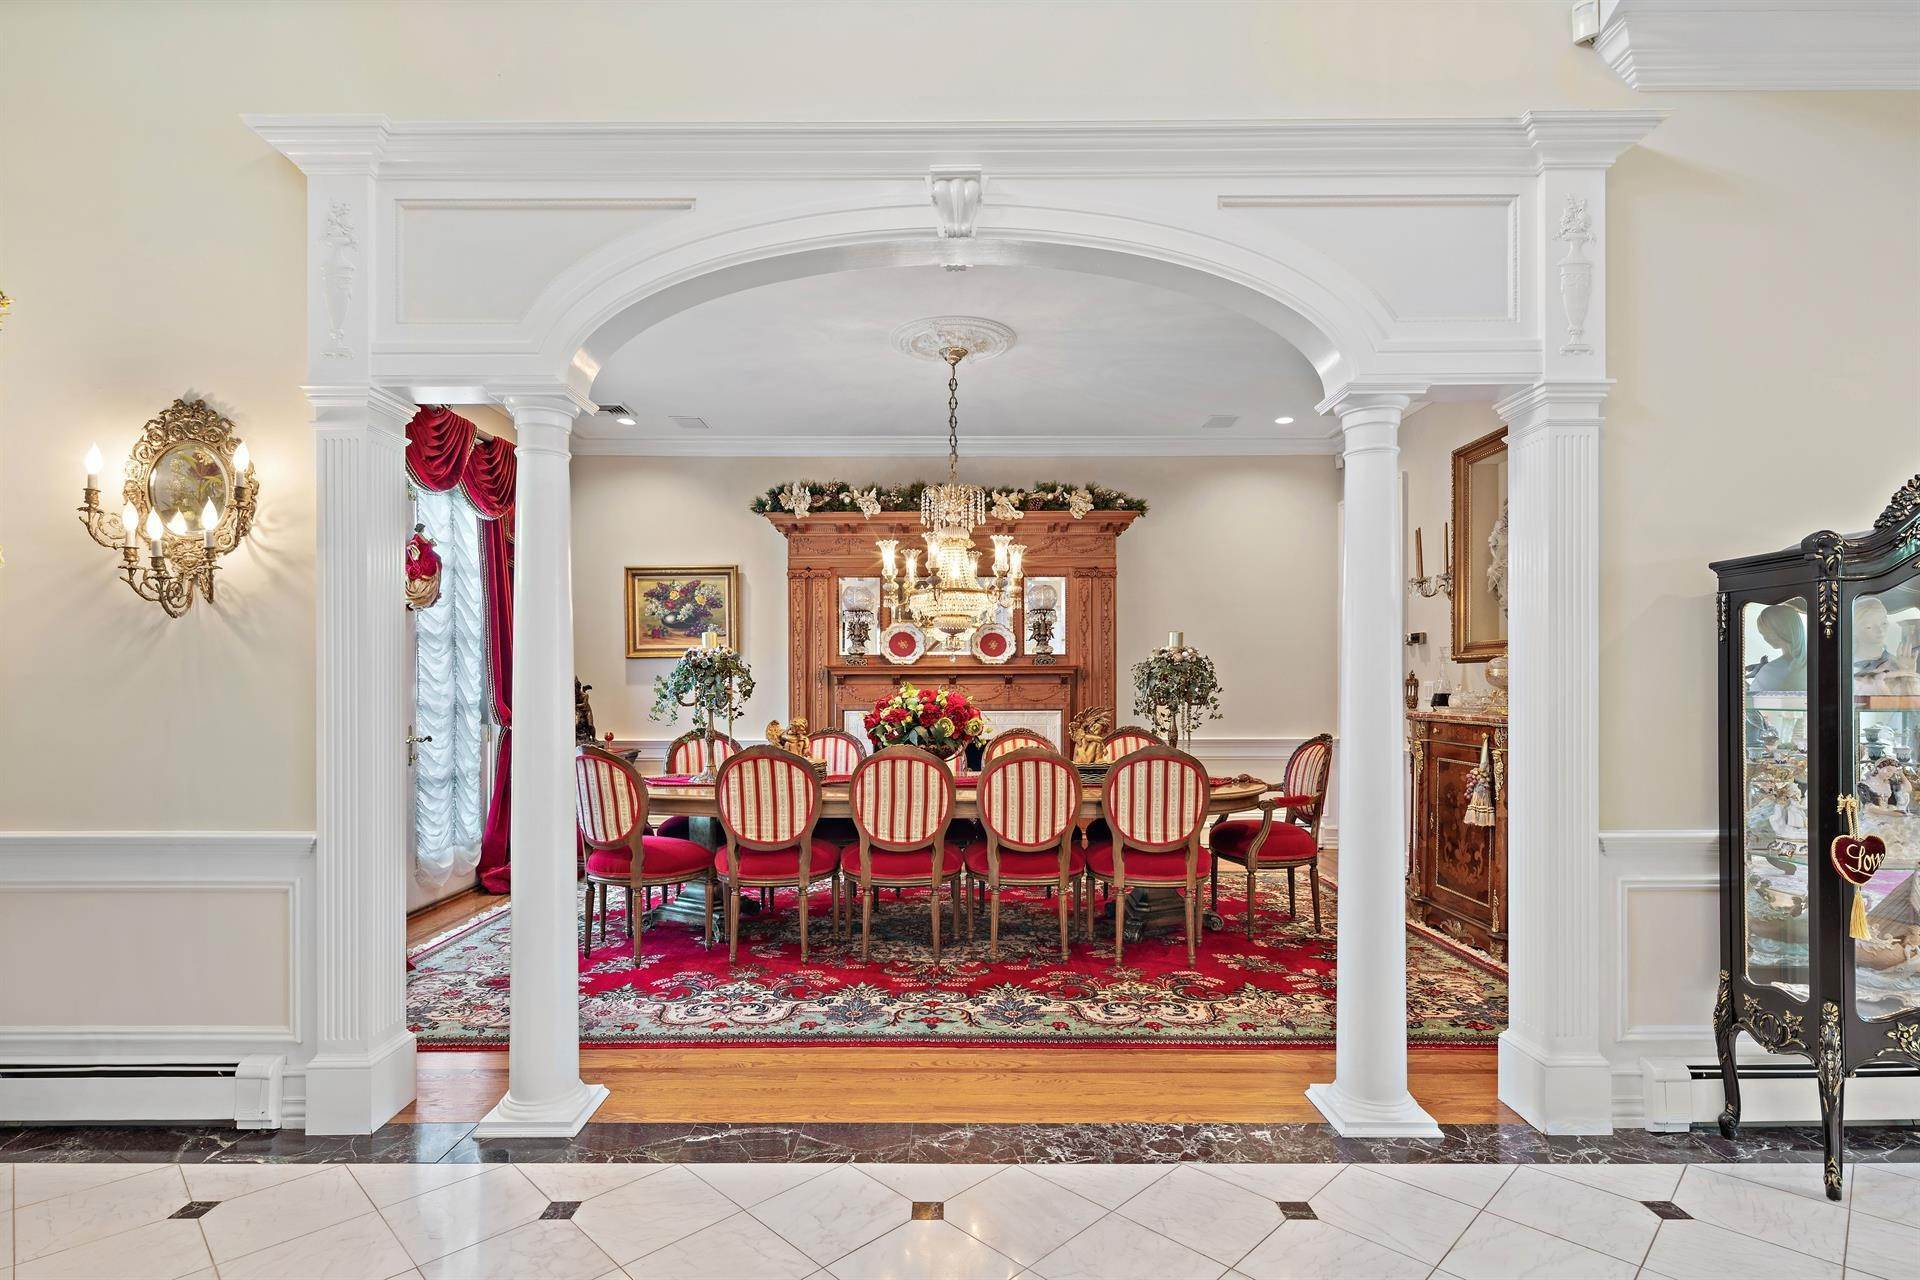 17. Residential for Sale at 15 Hunter Ridge Woodcliff Lake, New Jersey, 07677 United States